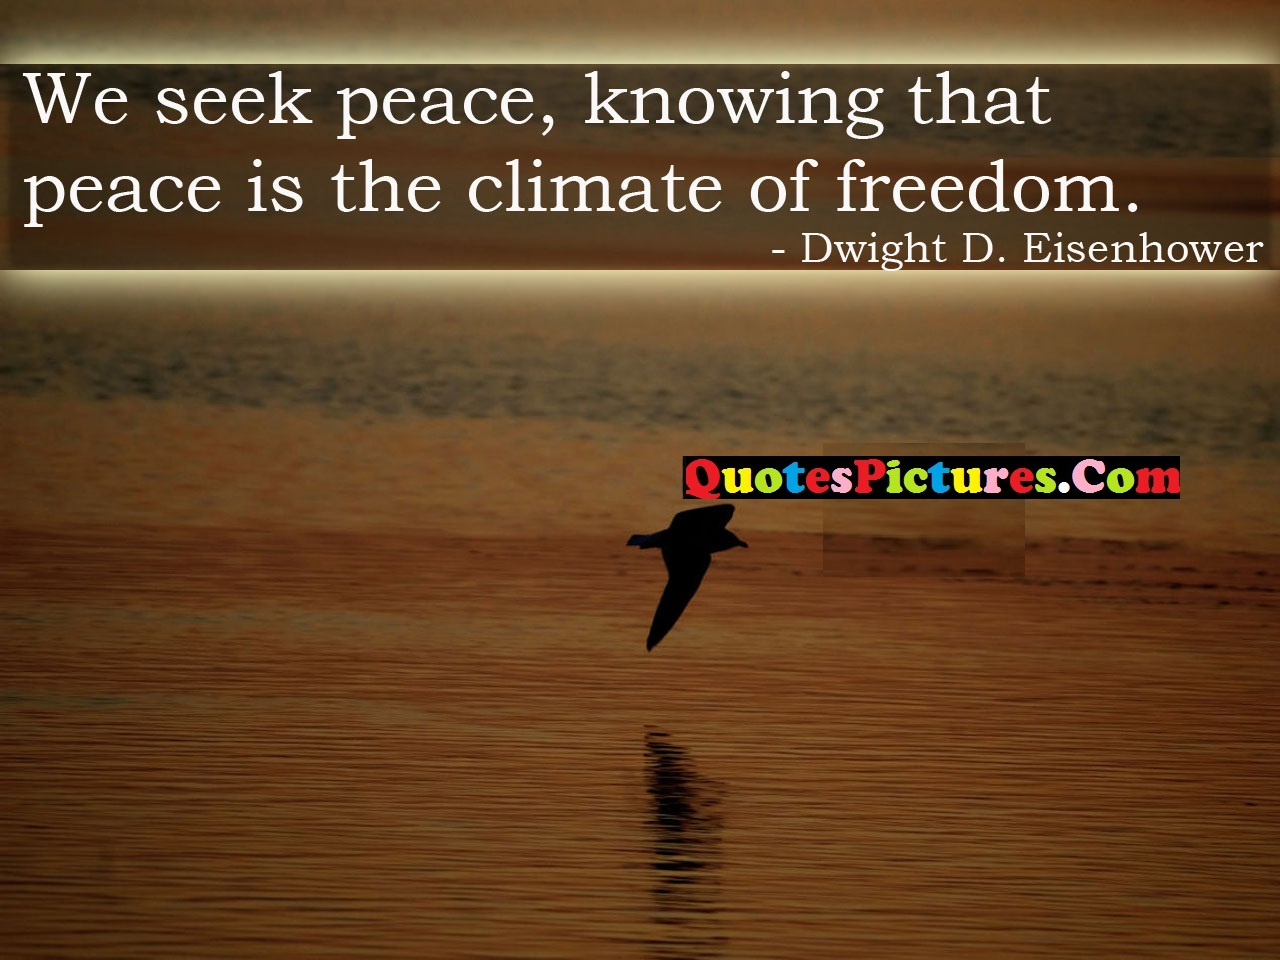 True Peace Quote - We Seek Peace, Knowing That PEace Is The Climate Of Freedom.